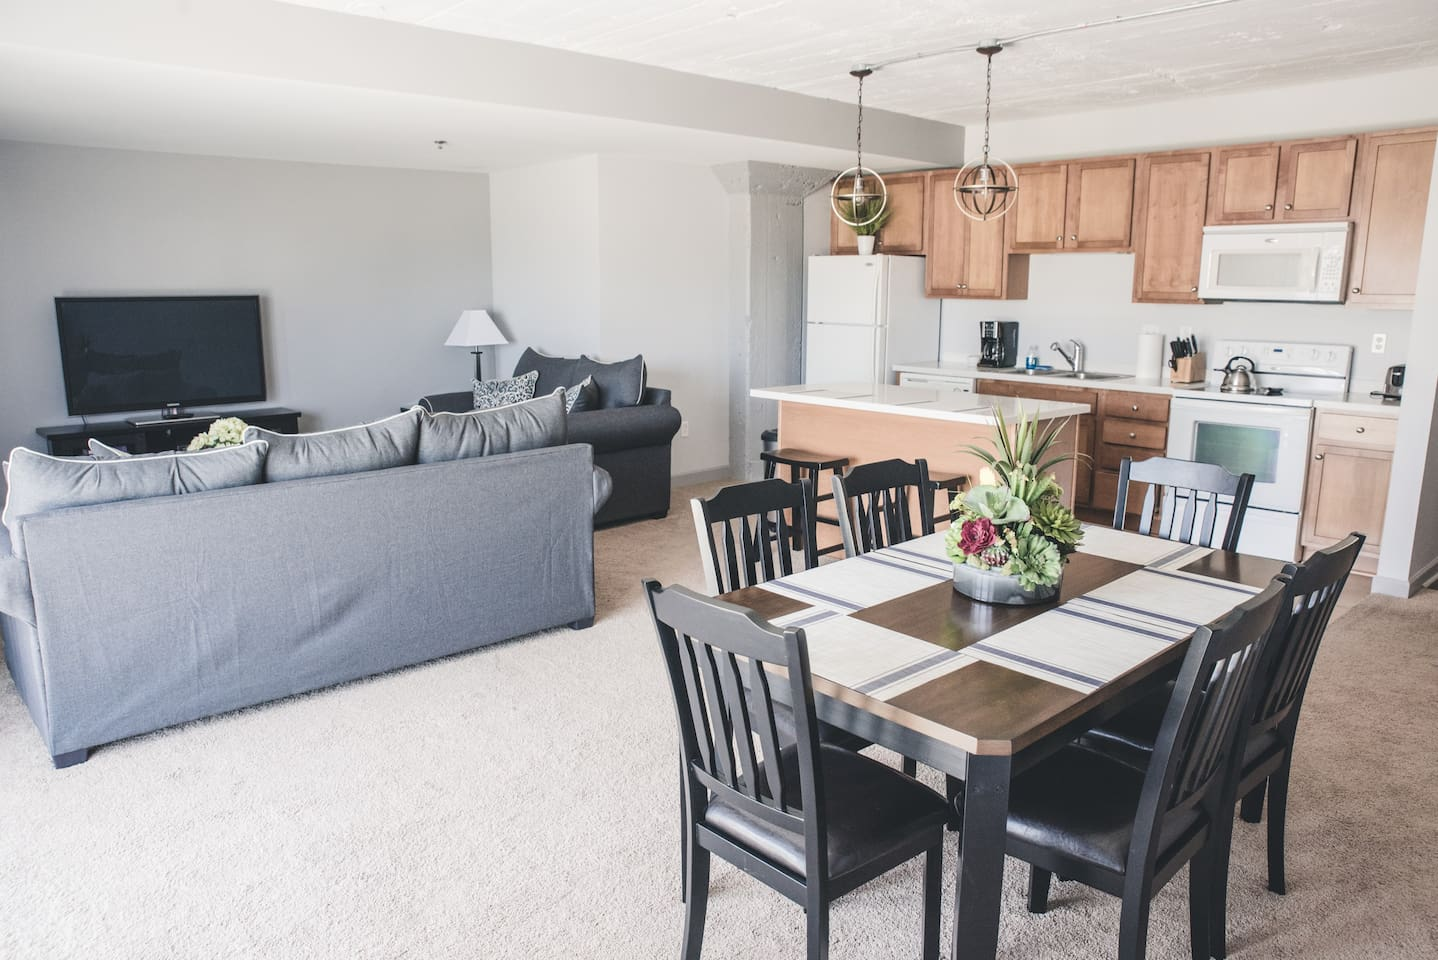 Main Living/Dining Area